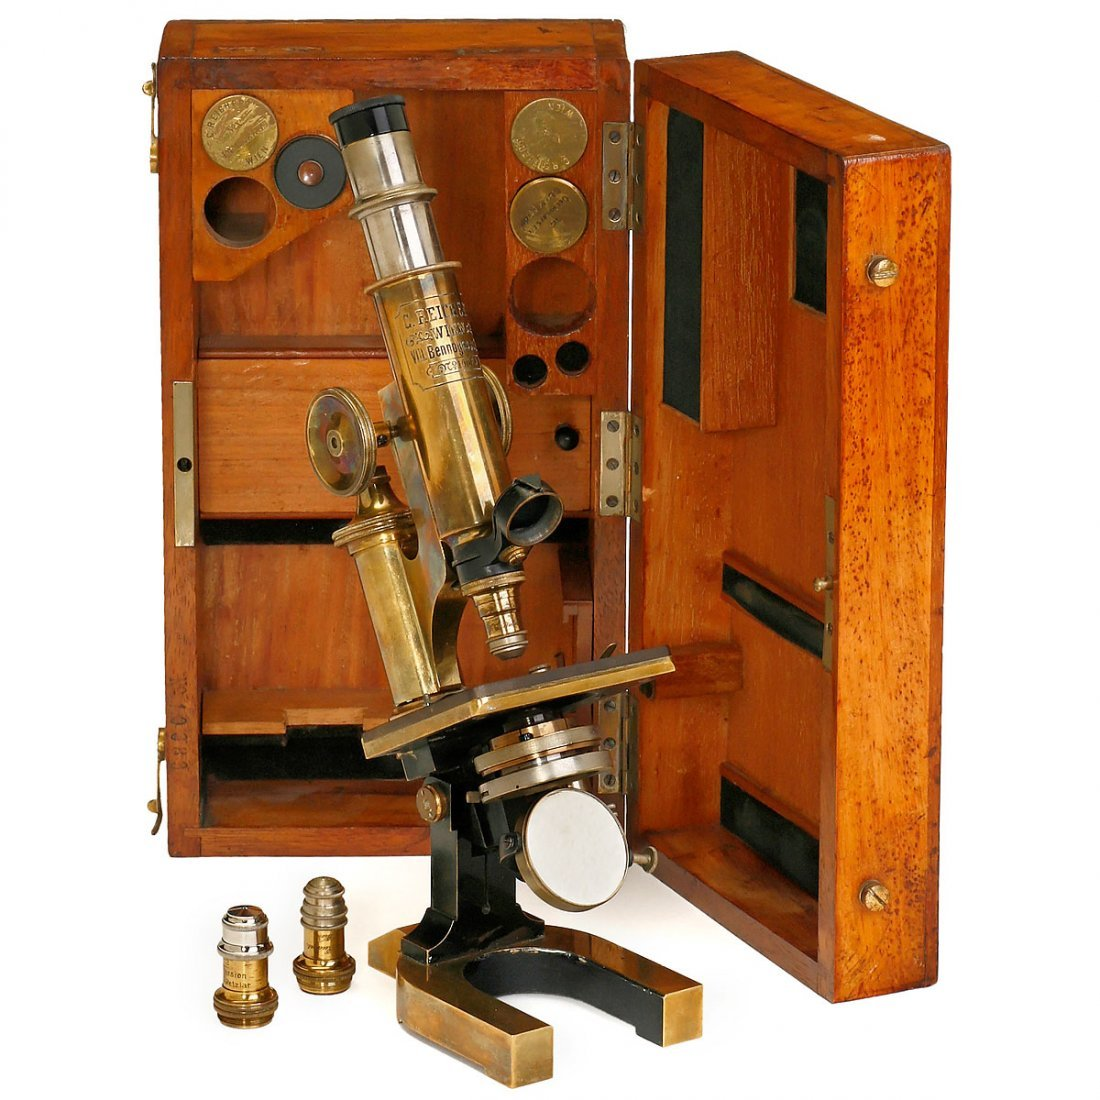 Reichert Compound Monocular Microscope, c. 1890